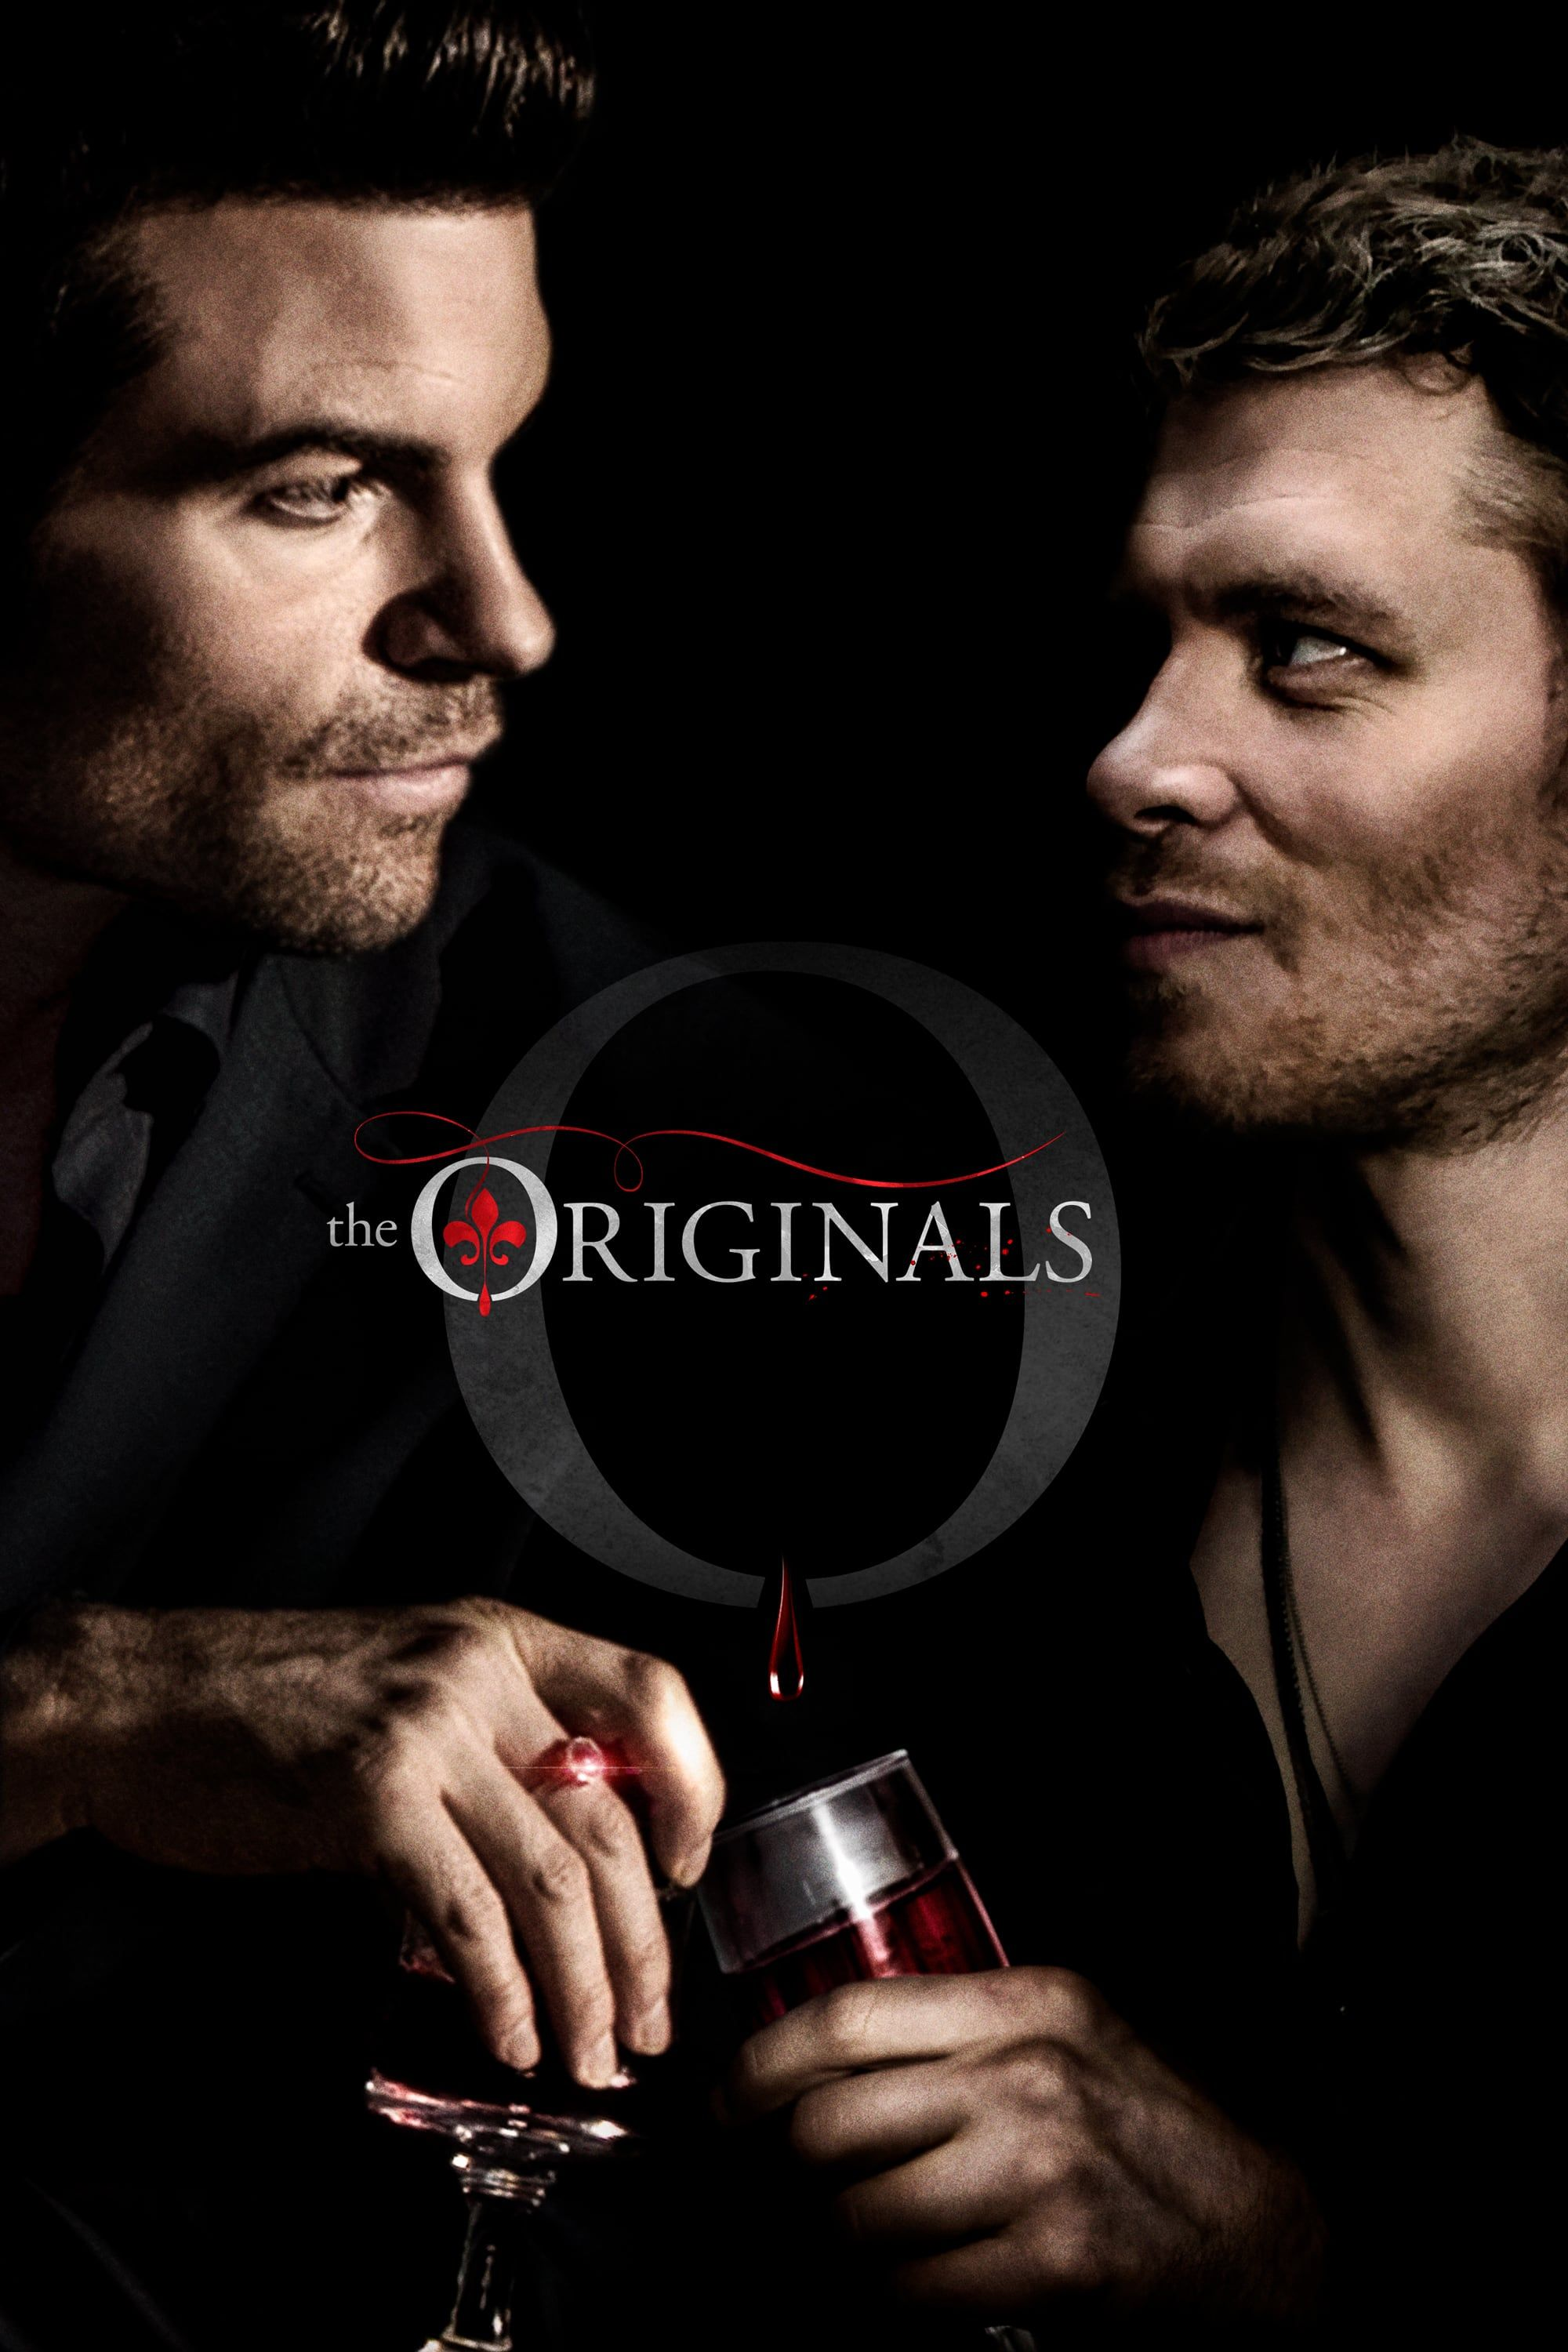 Watch The Originals 2013 Online Free Watchfree Website The